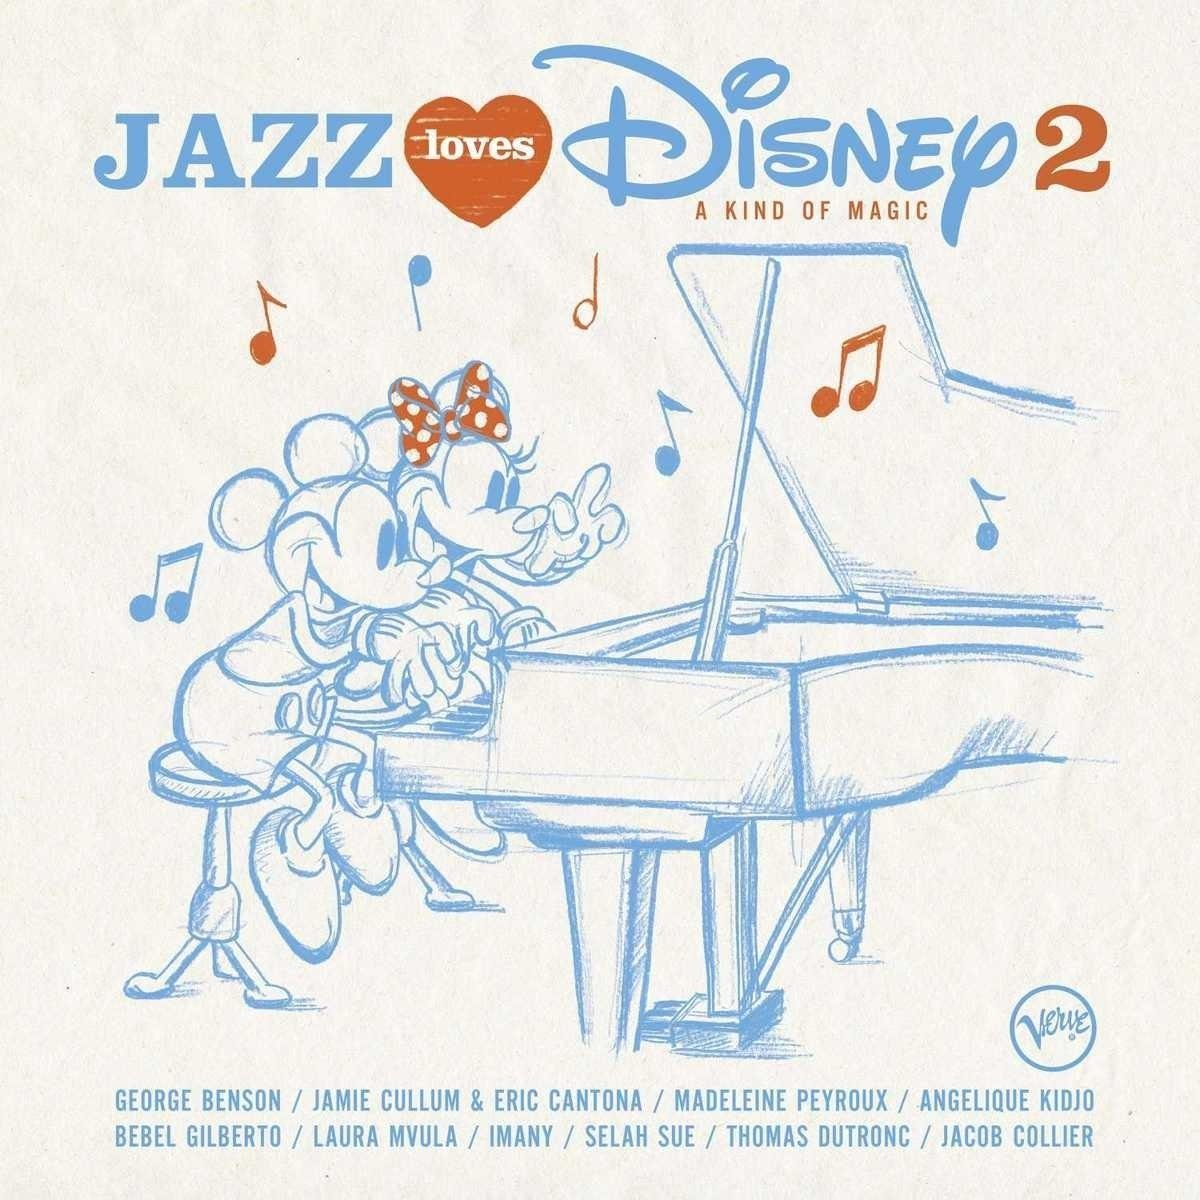 10000 VARIOUS ARTISTS - Jazz Loves Disney 2 - A Kind Of Magic cover